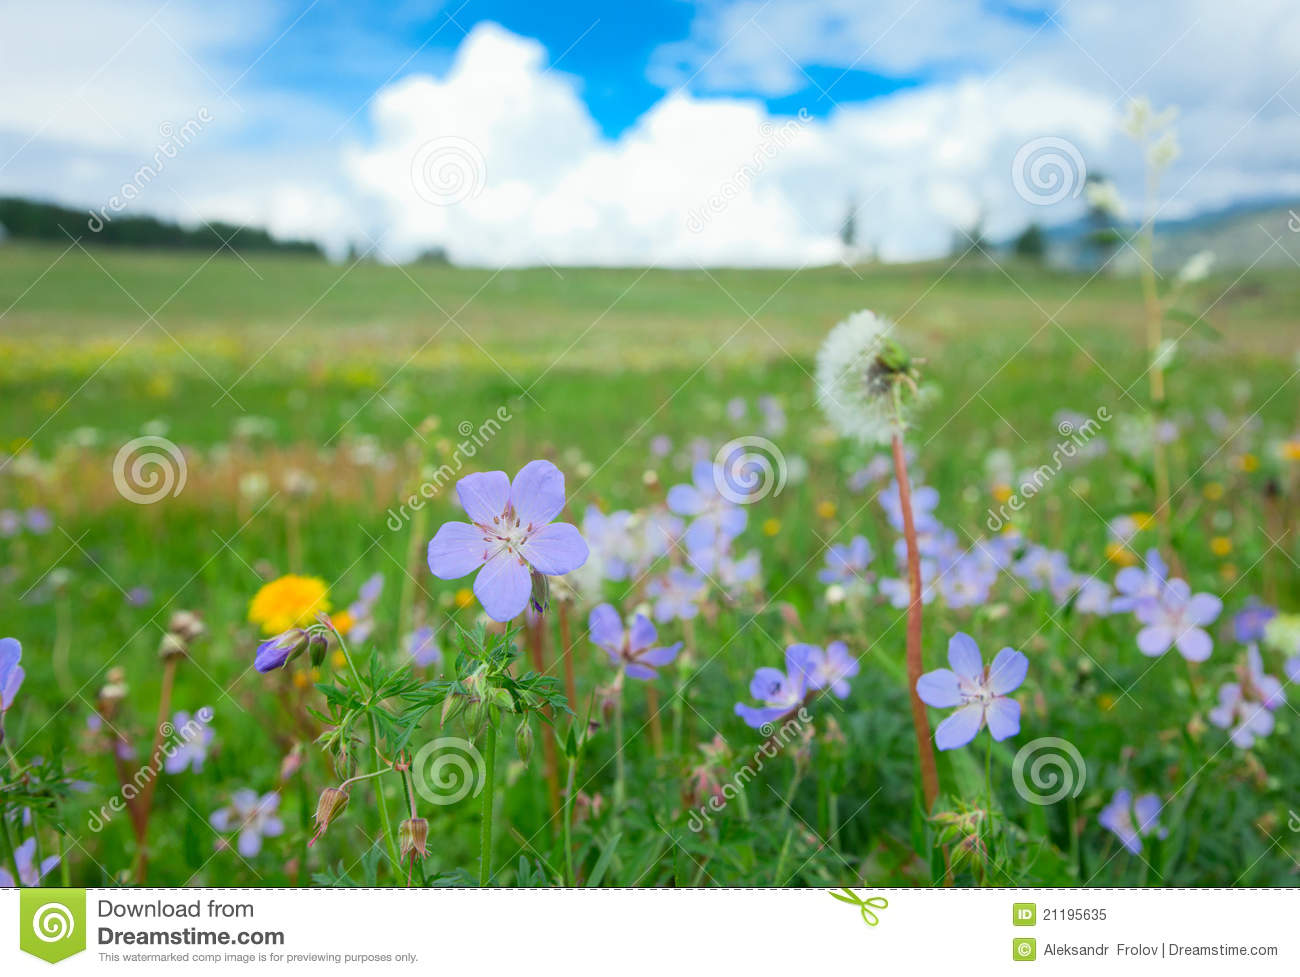 Meadow on a summer day